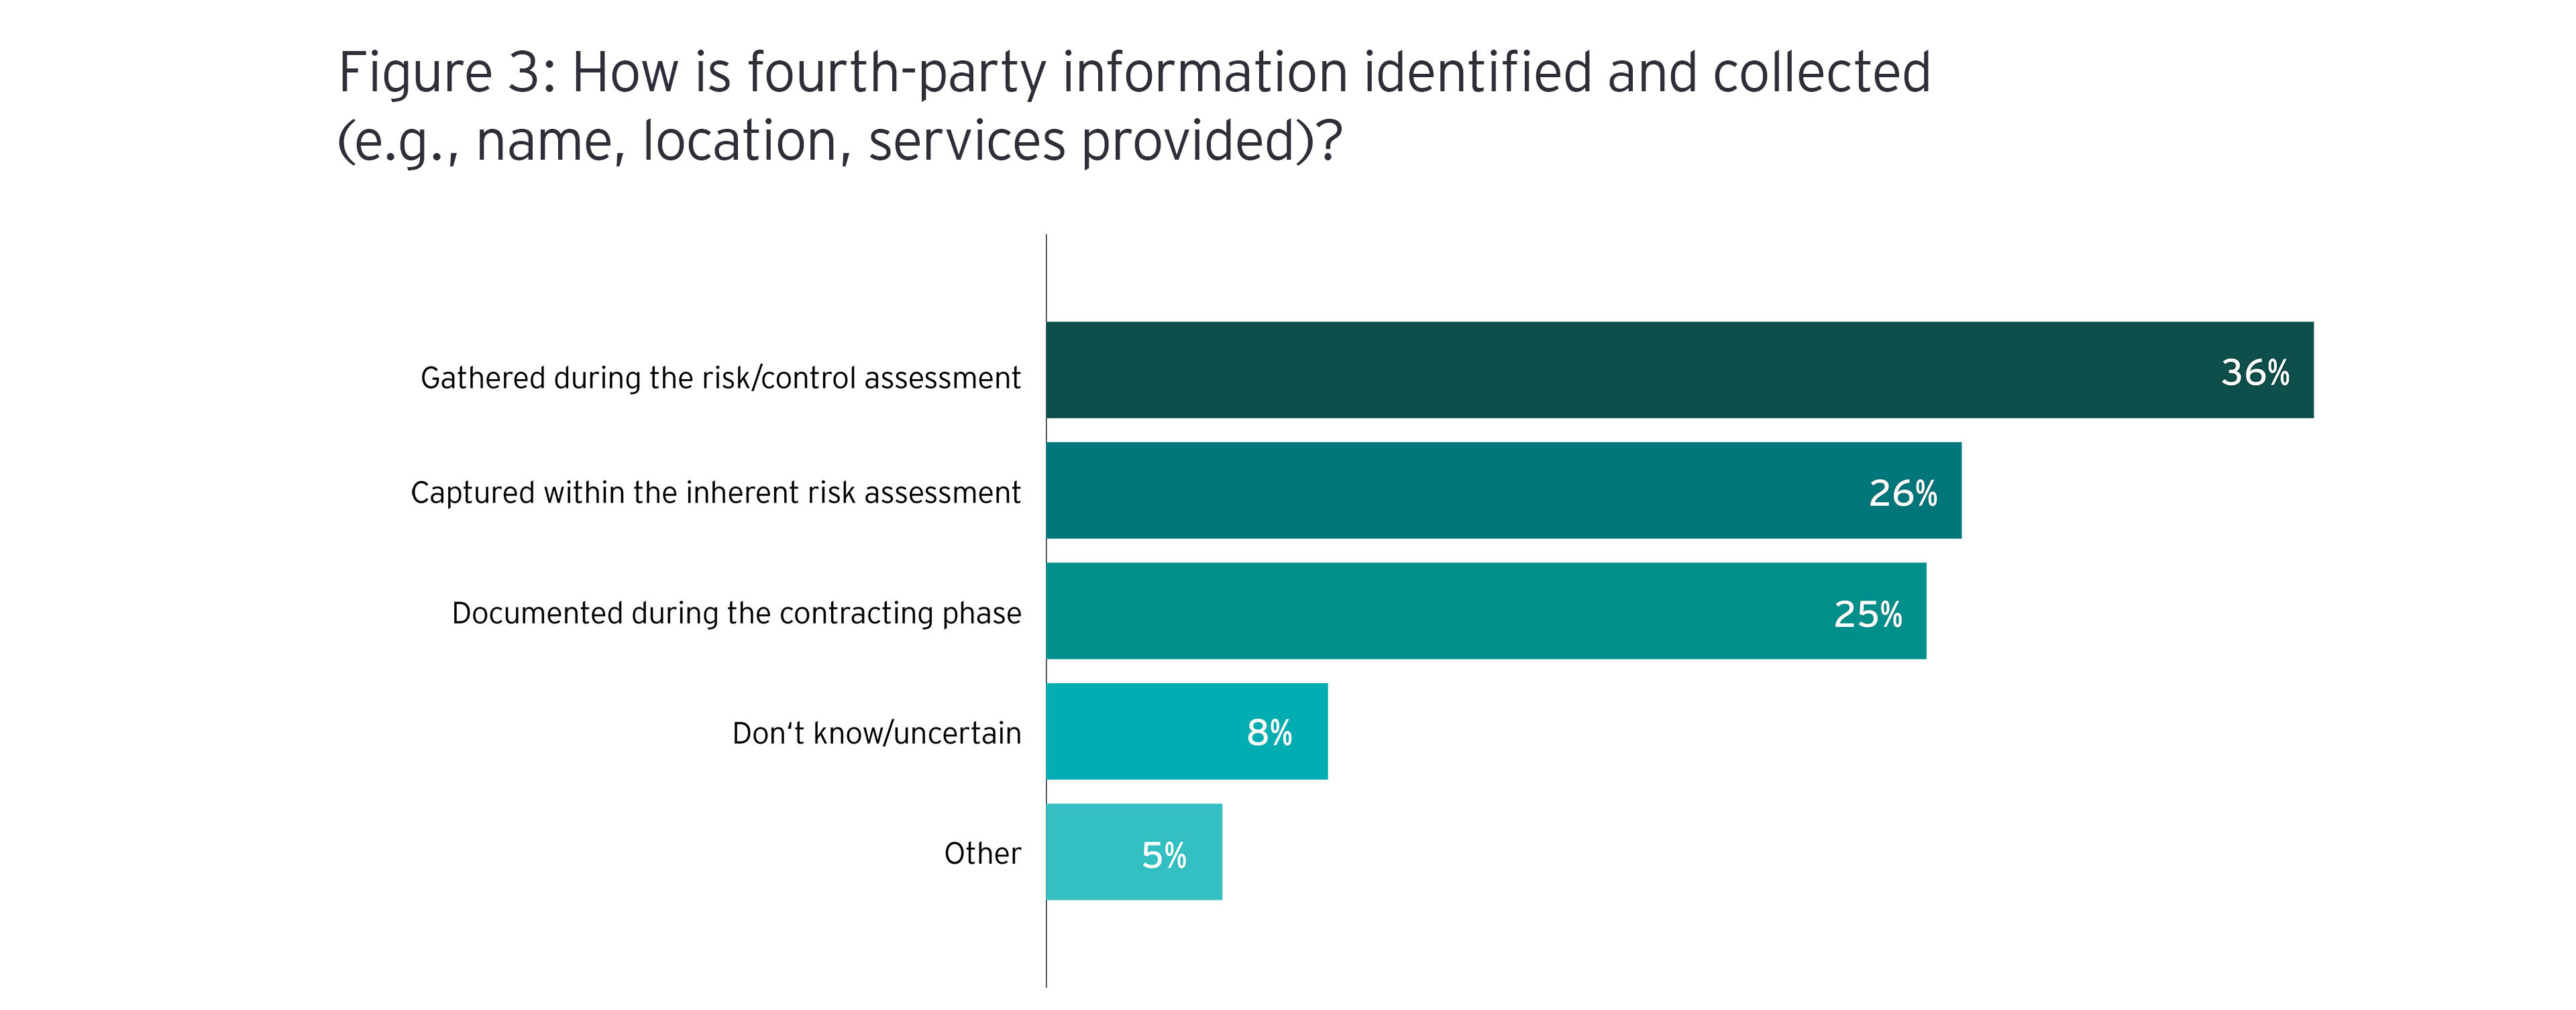 Survey question of how is fourth-party information identified and collected